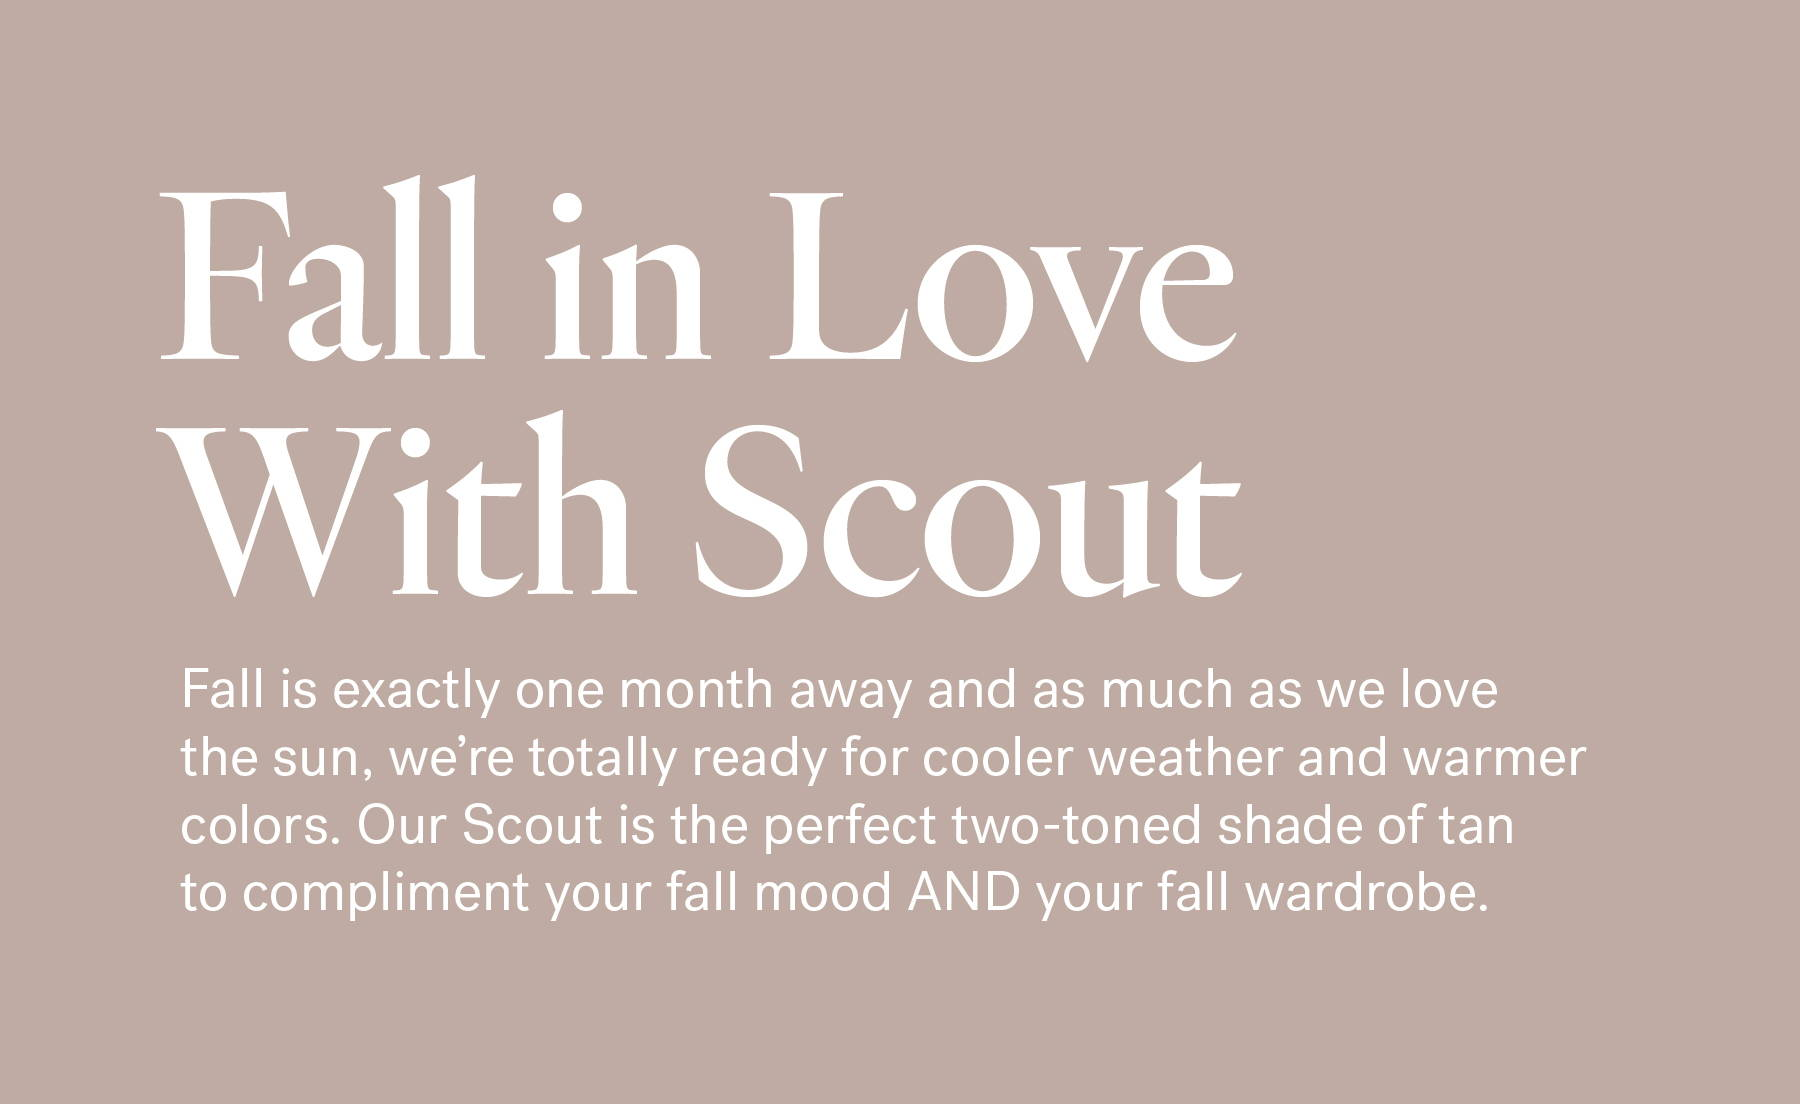 Fall in love with Scout. Fall is exactly one month away and as much as we love the sun, we're totally ready for cooler weather and warmer colors. Our Scout is the perfect two-toned shade of tan to compliment your fall mood AND your fall wardrobe.